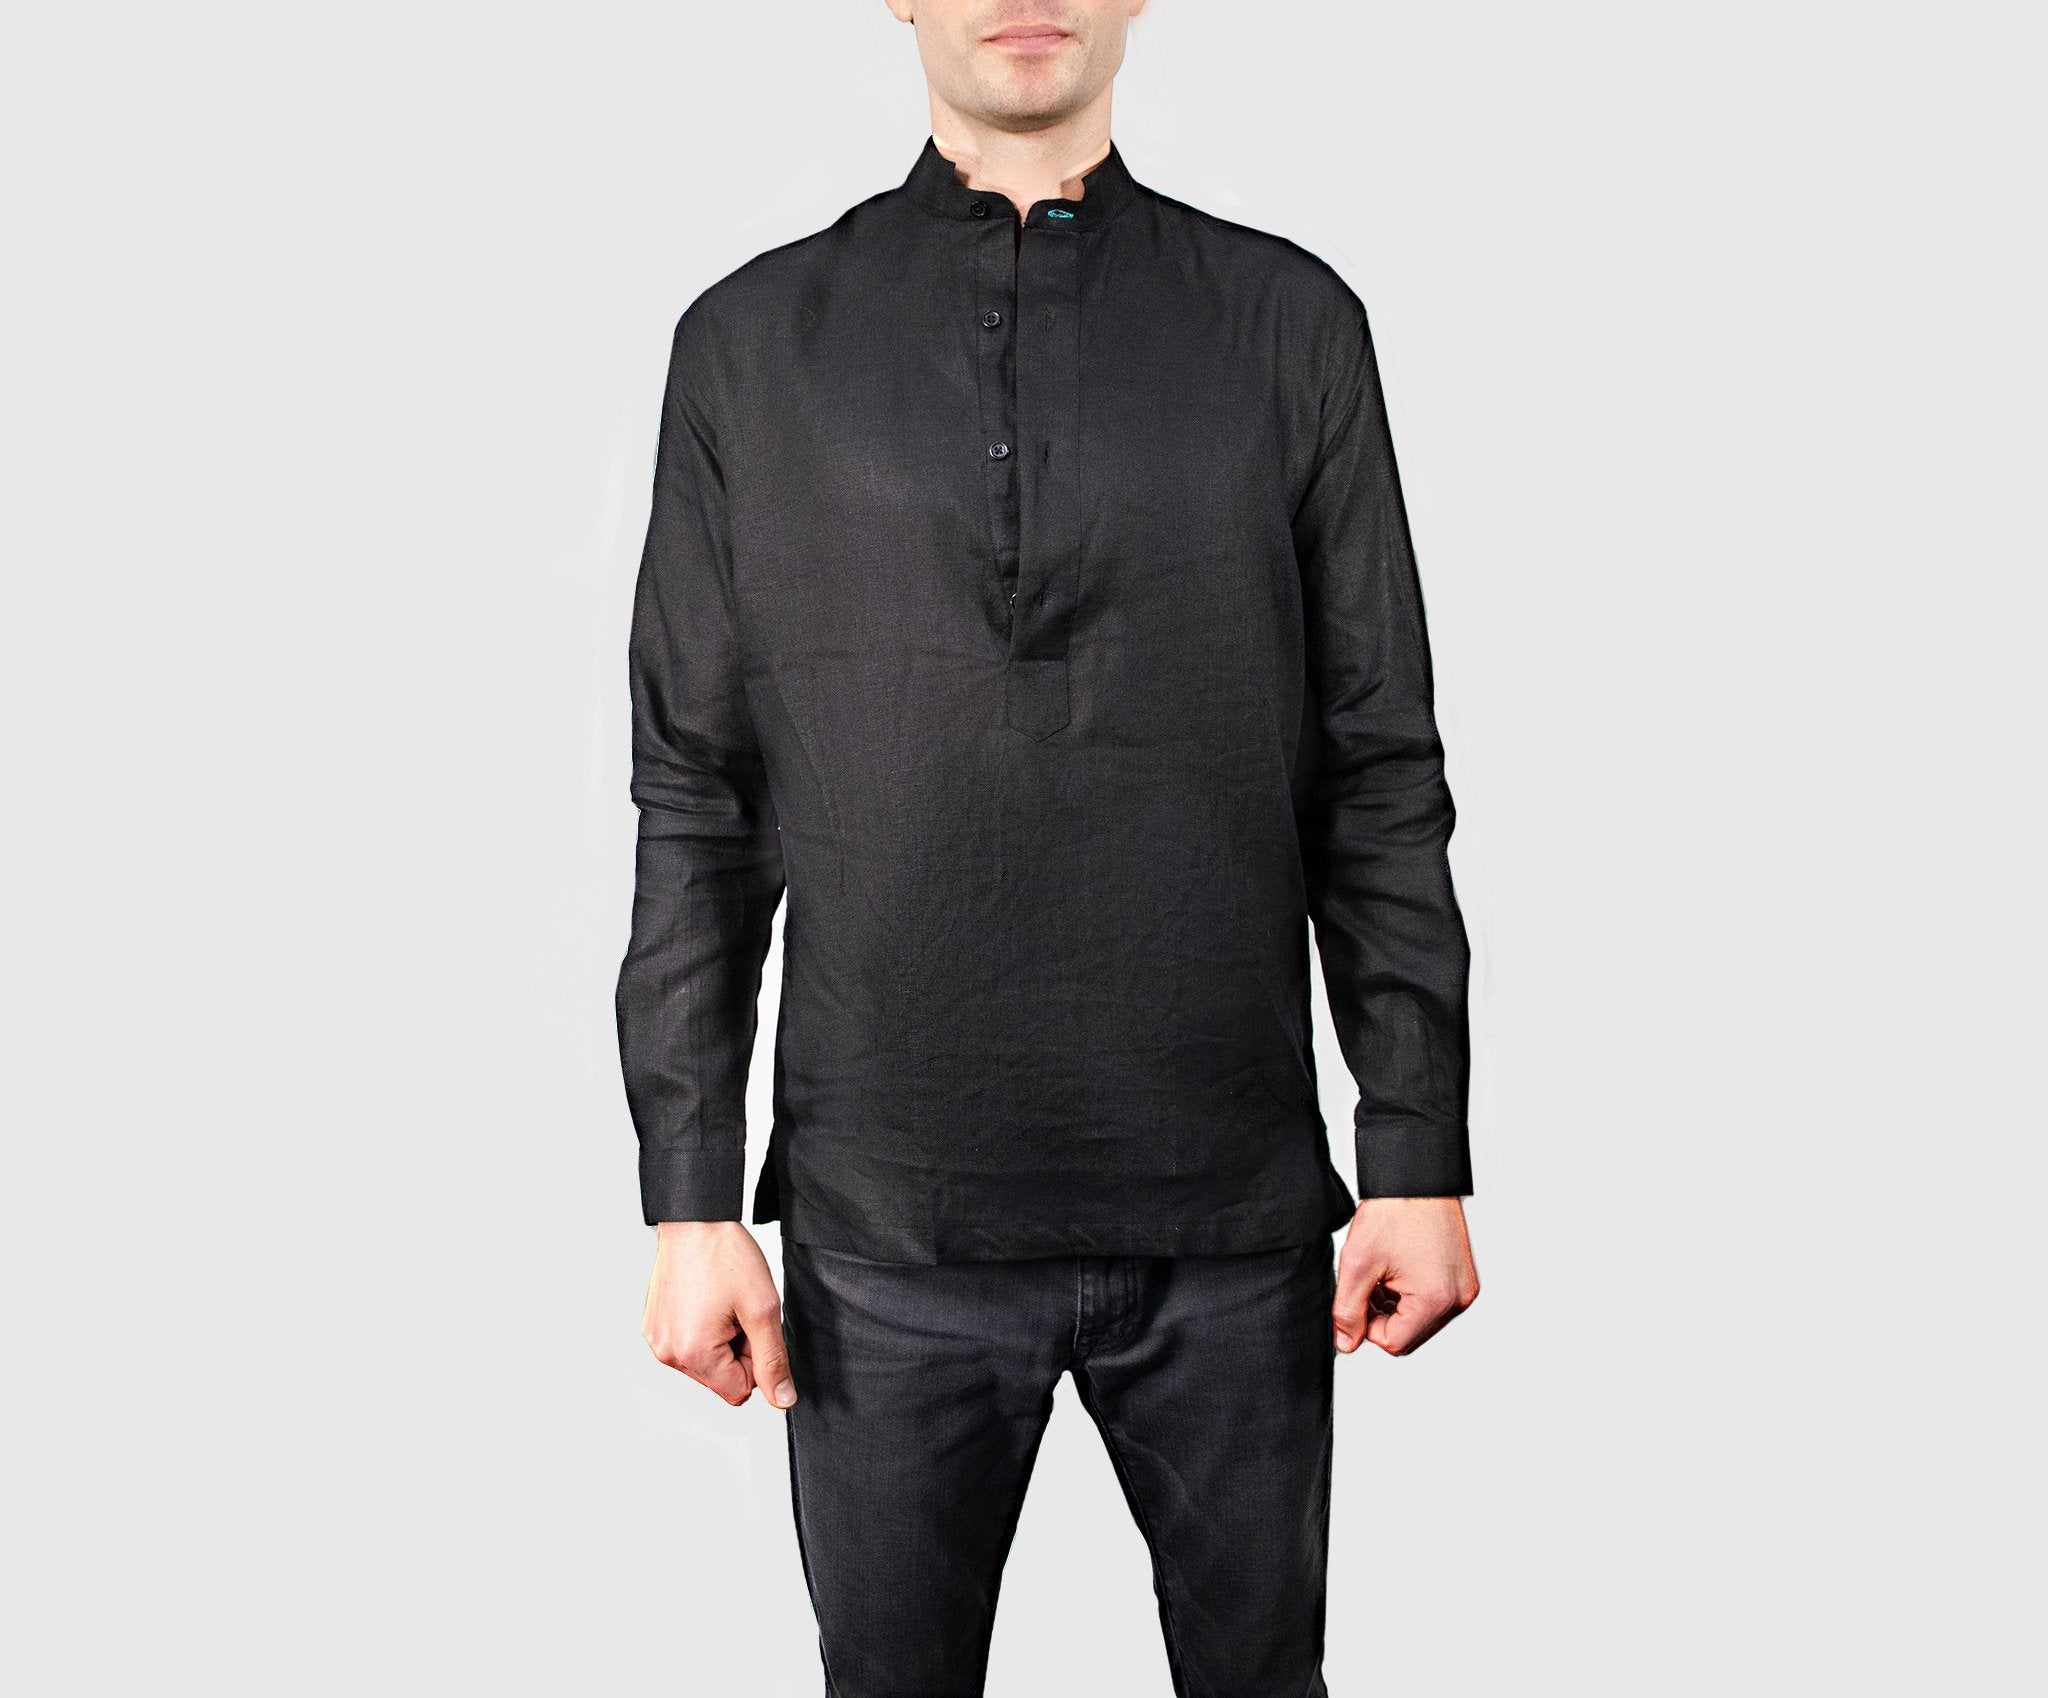 Pullover - Black Mandarin Collar Shirt